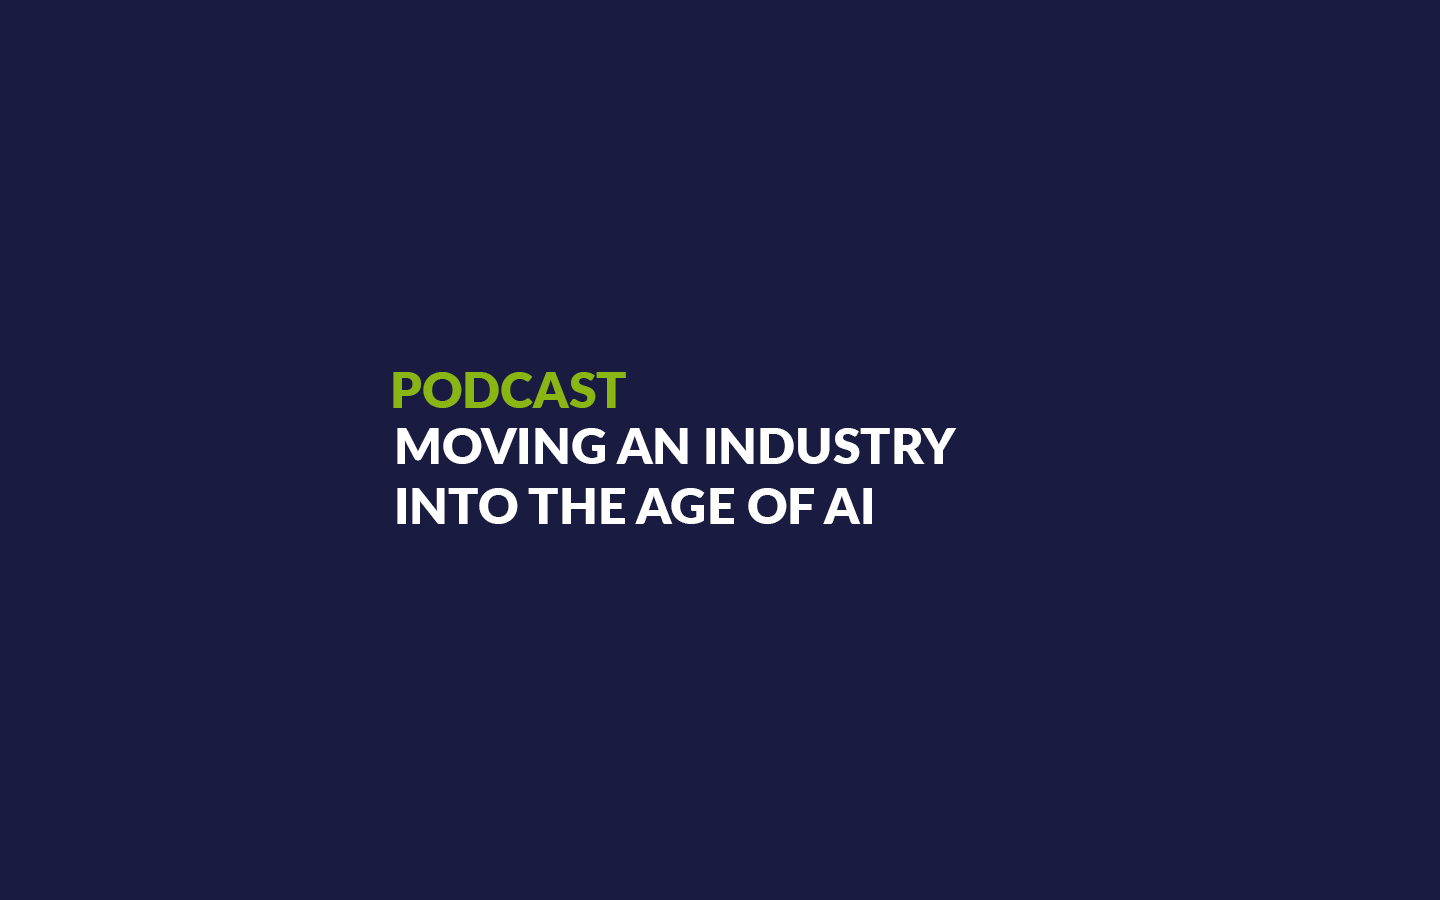 Podcast: Moving an Industry into the Age of AI mit Martin Stamenov (Team Lead Machine Learning)